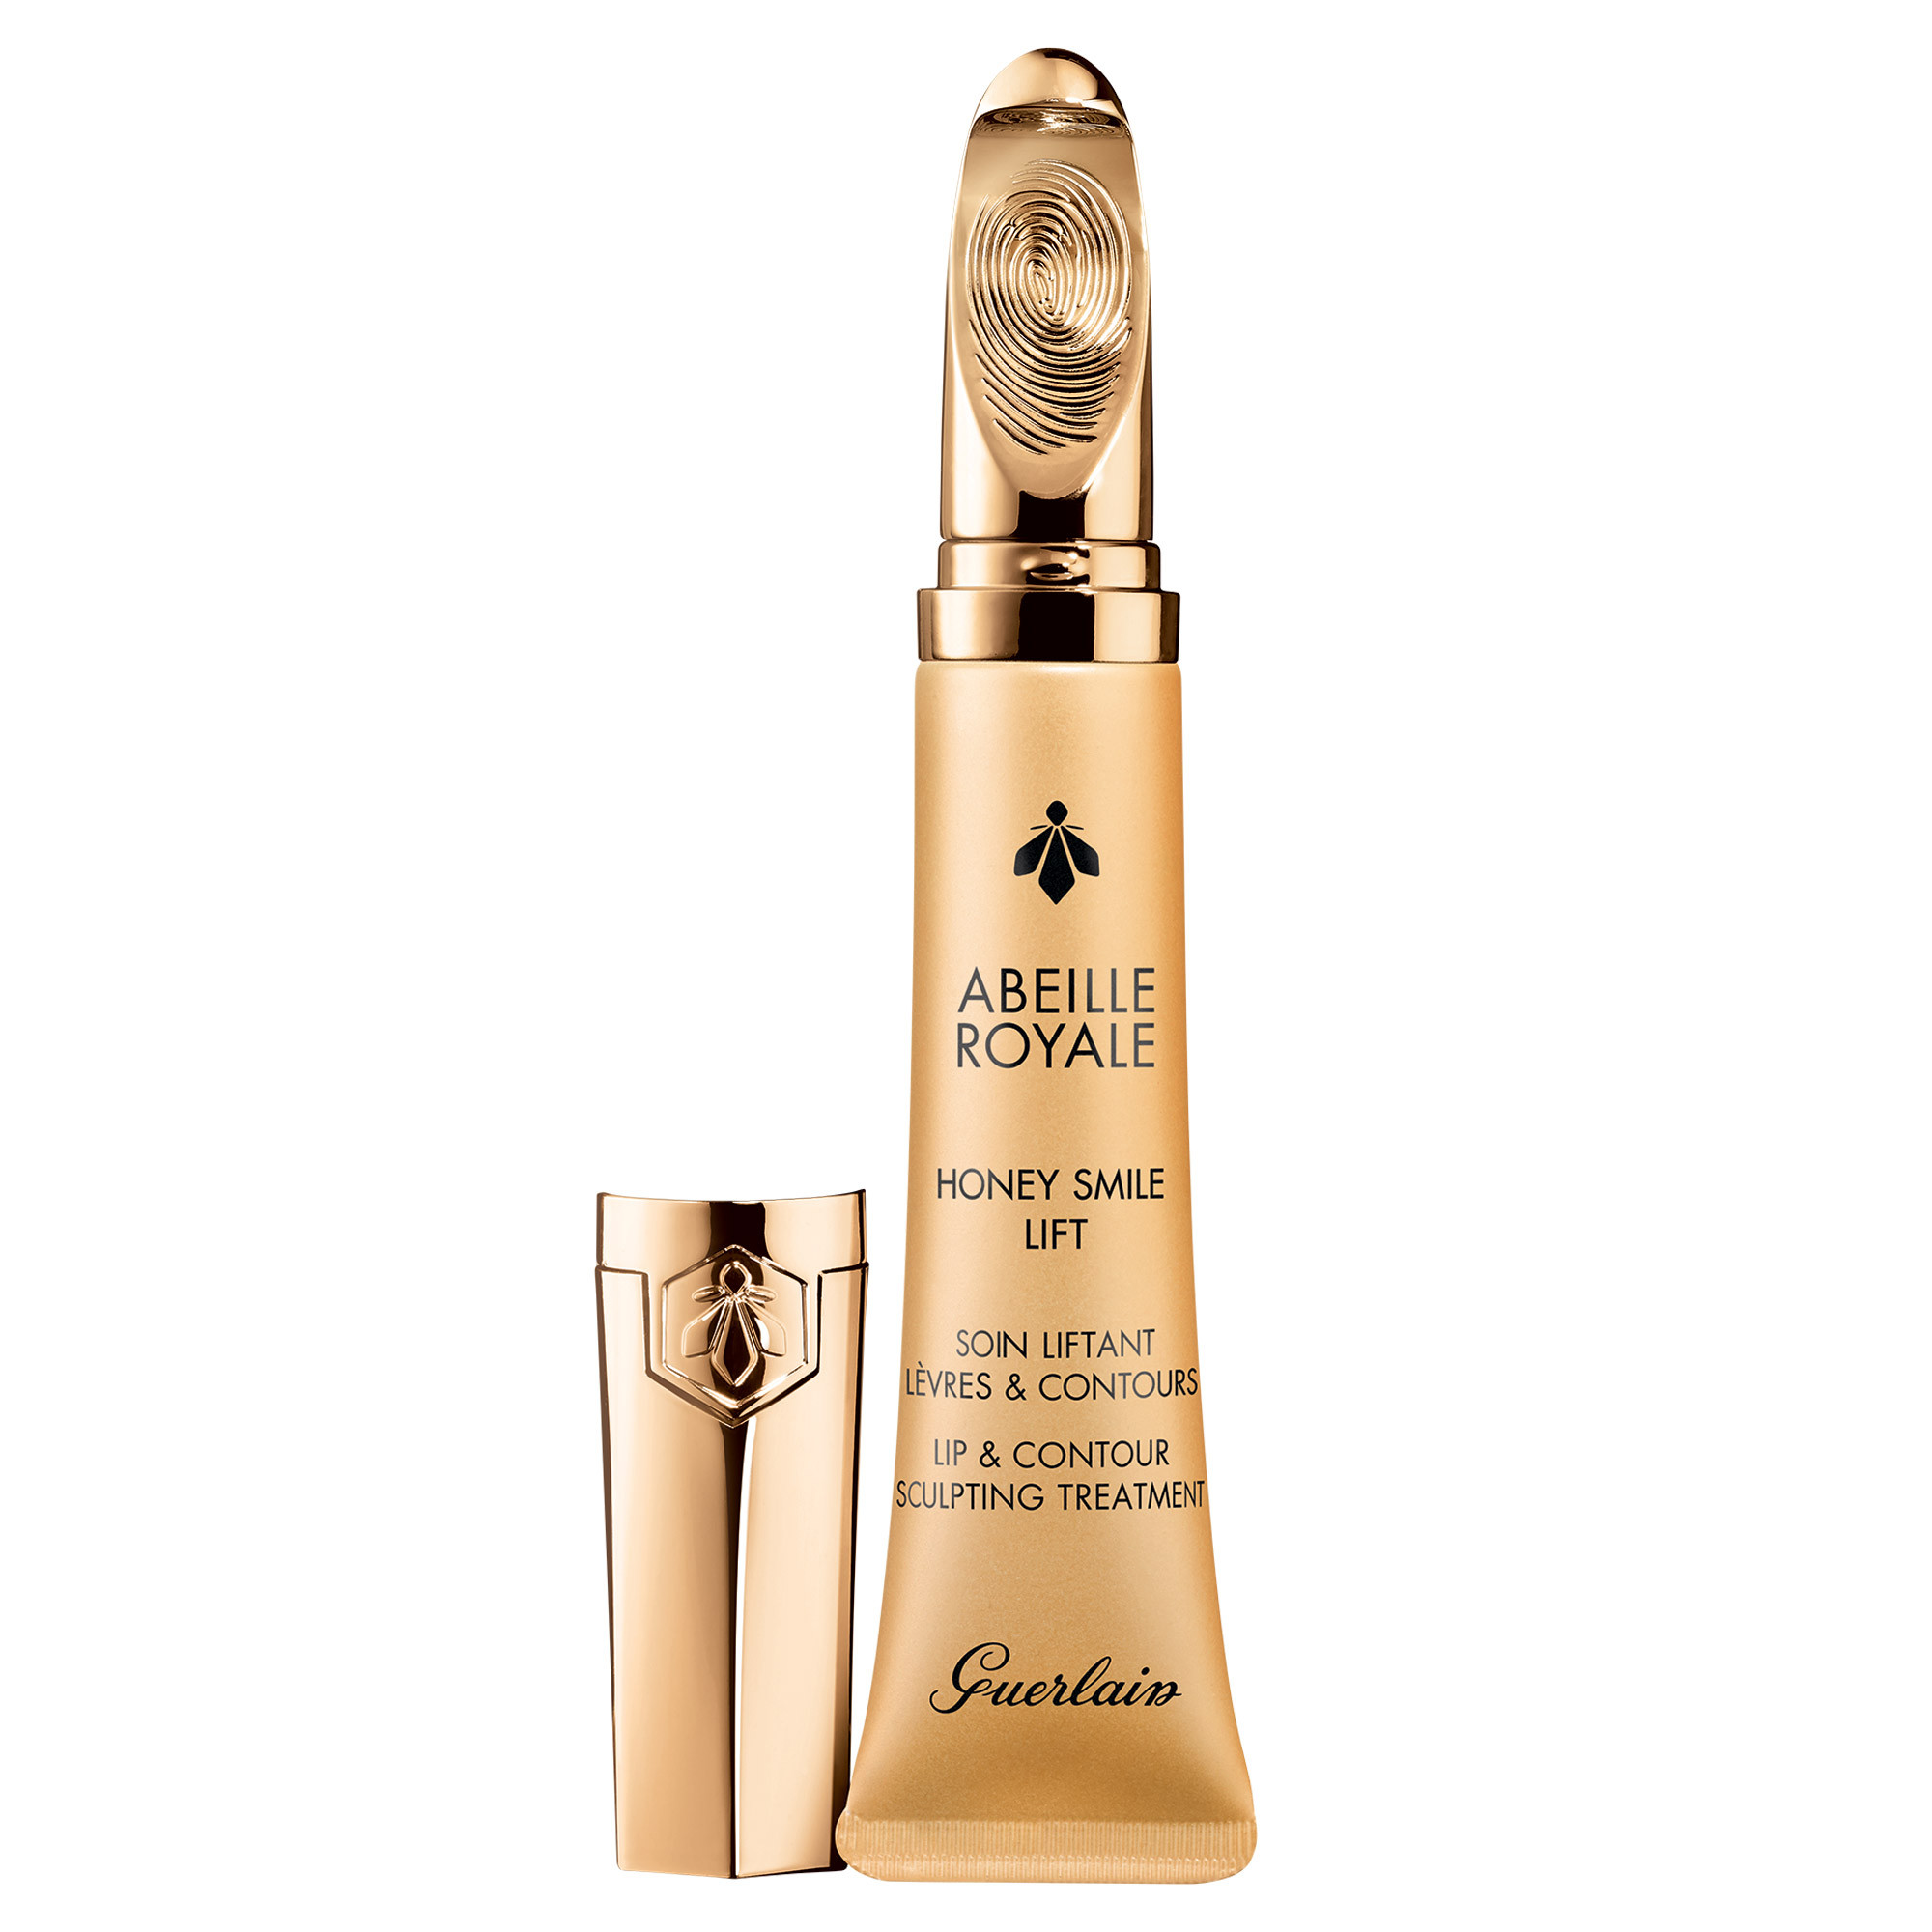 Abeille Royale - Honey Smile Lift 15 ml